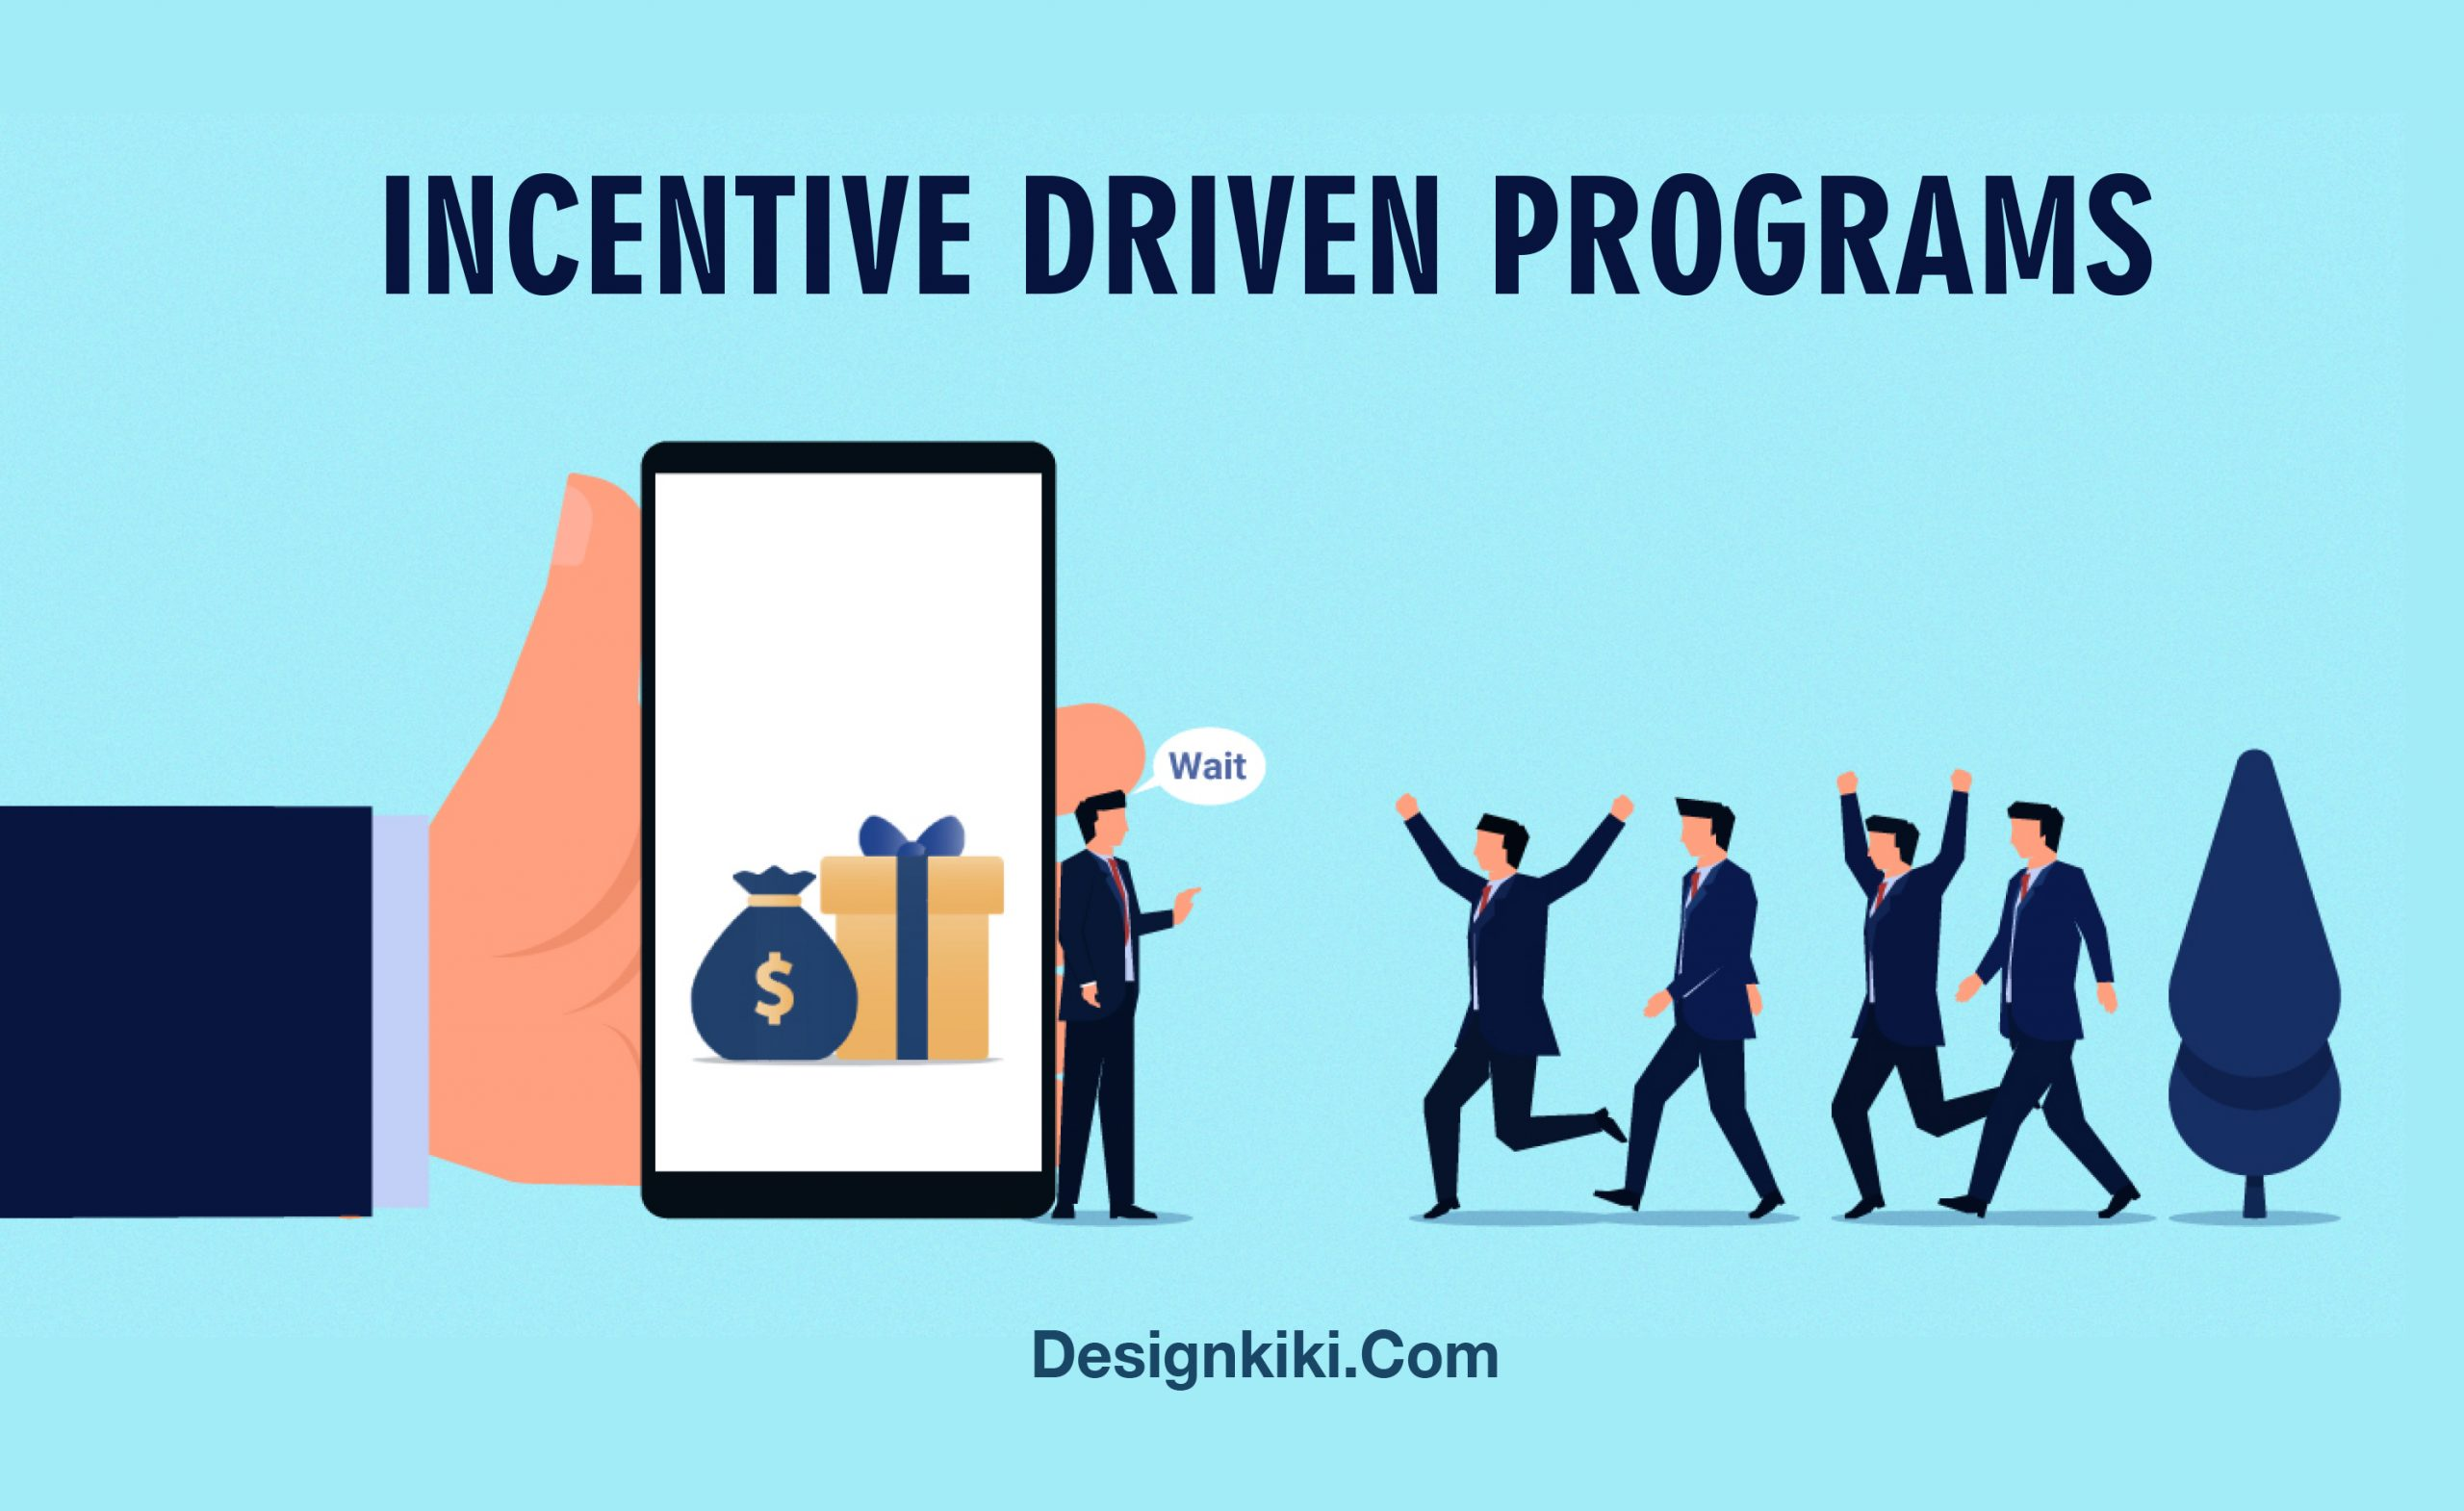 Incentives can increase the productivity of your employees, thus making your business more profitable